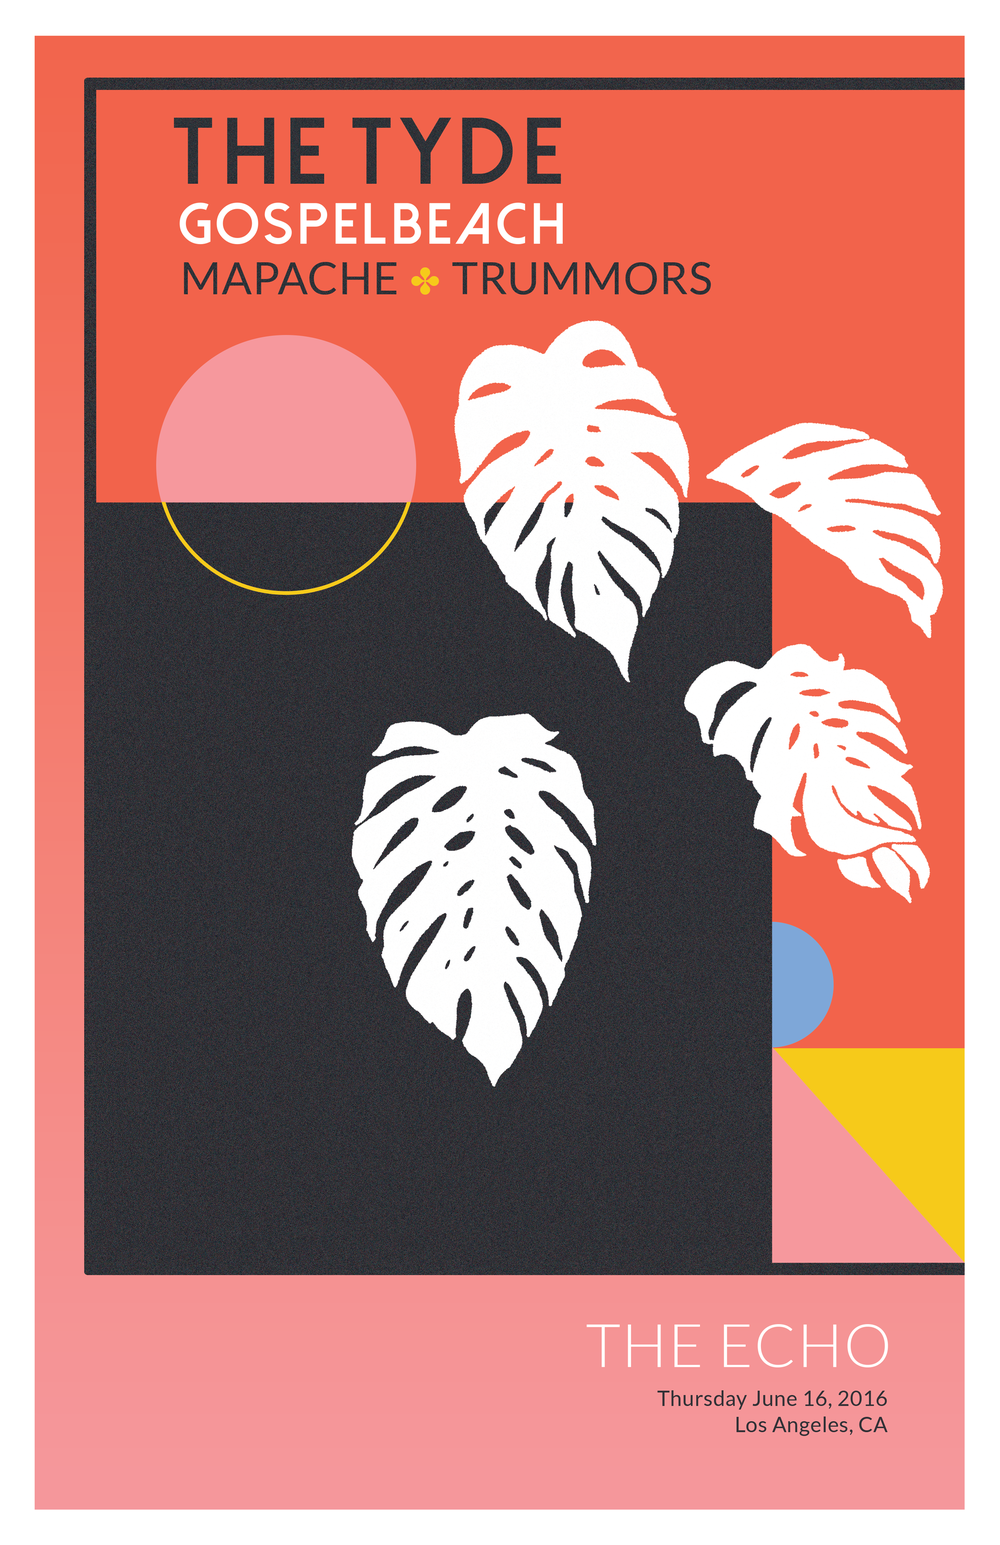 TheTyde-GospelbeacH-6.14.2016-Poster-forWEB.png